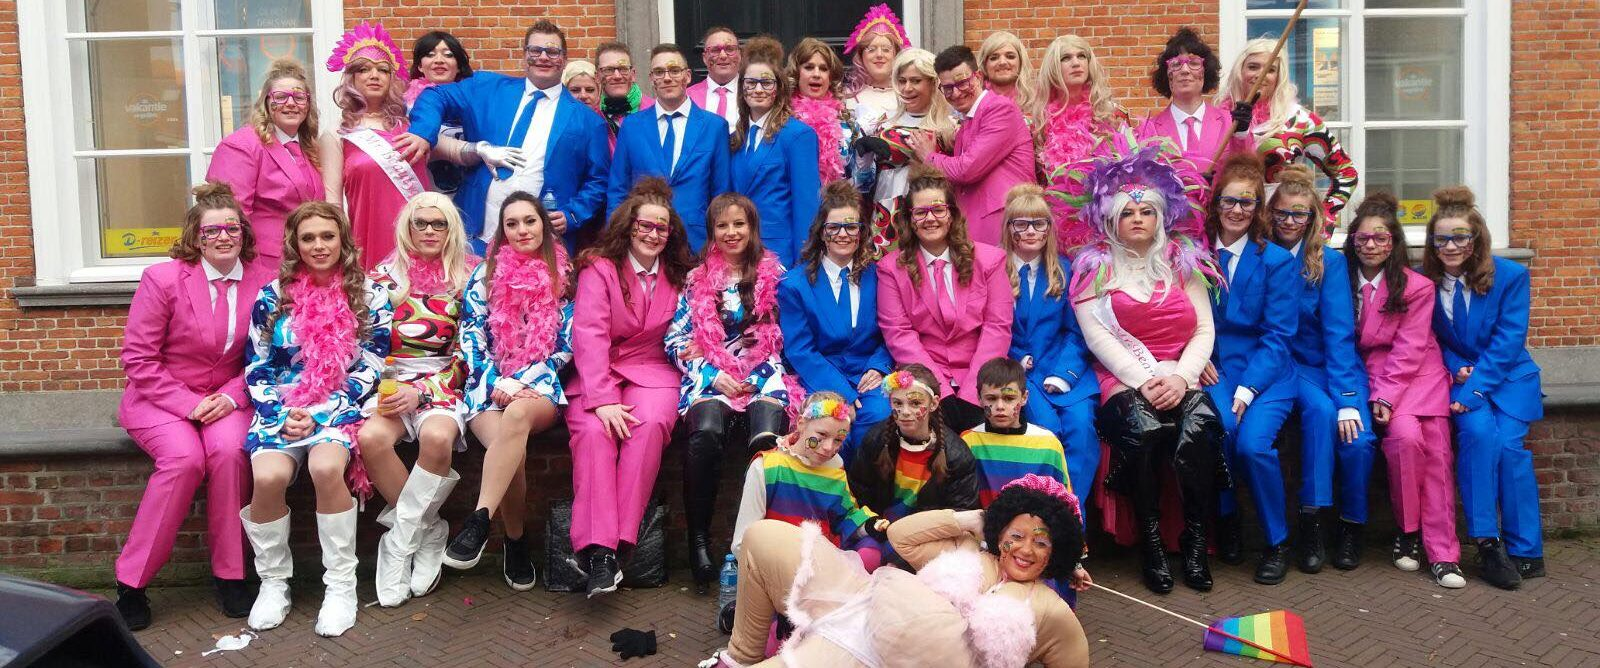 Carnavalsvereniging Spuit 11